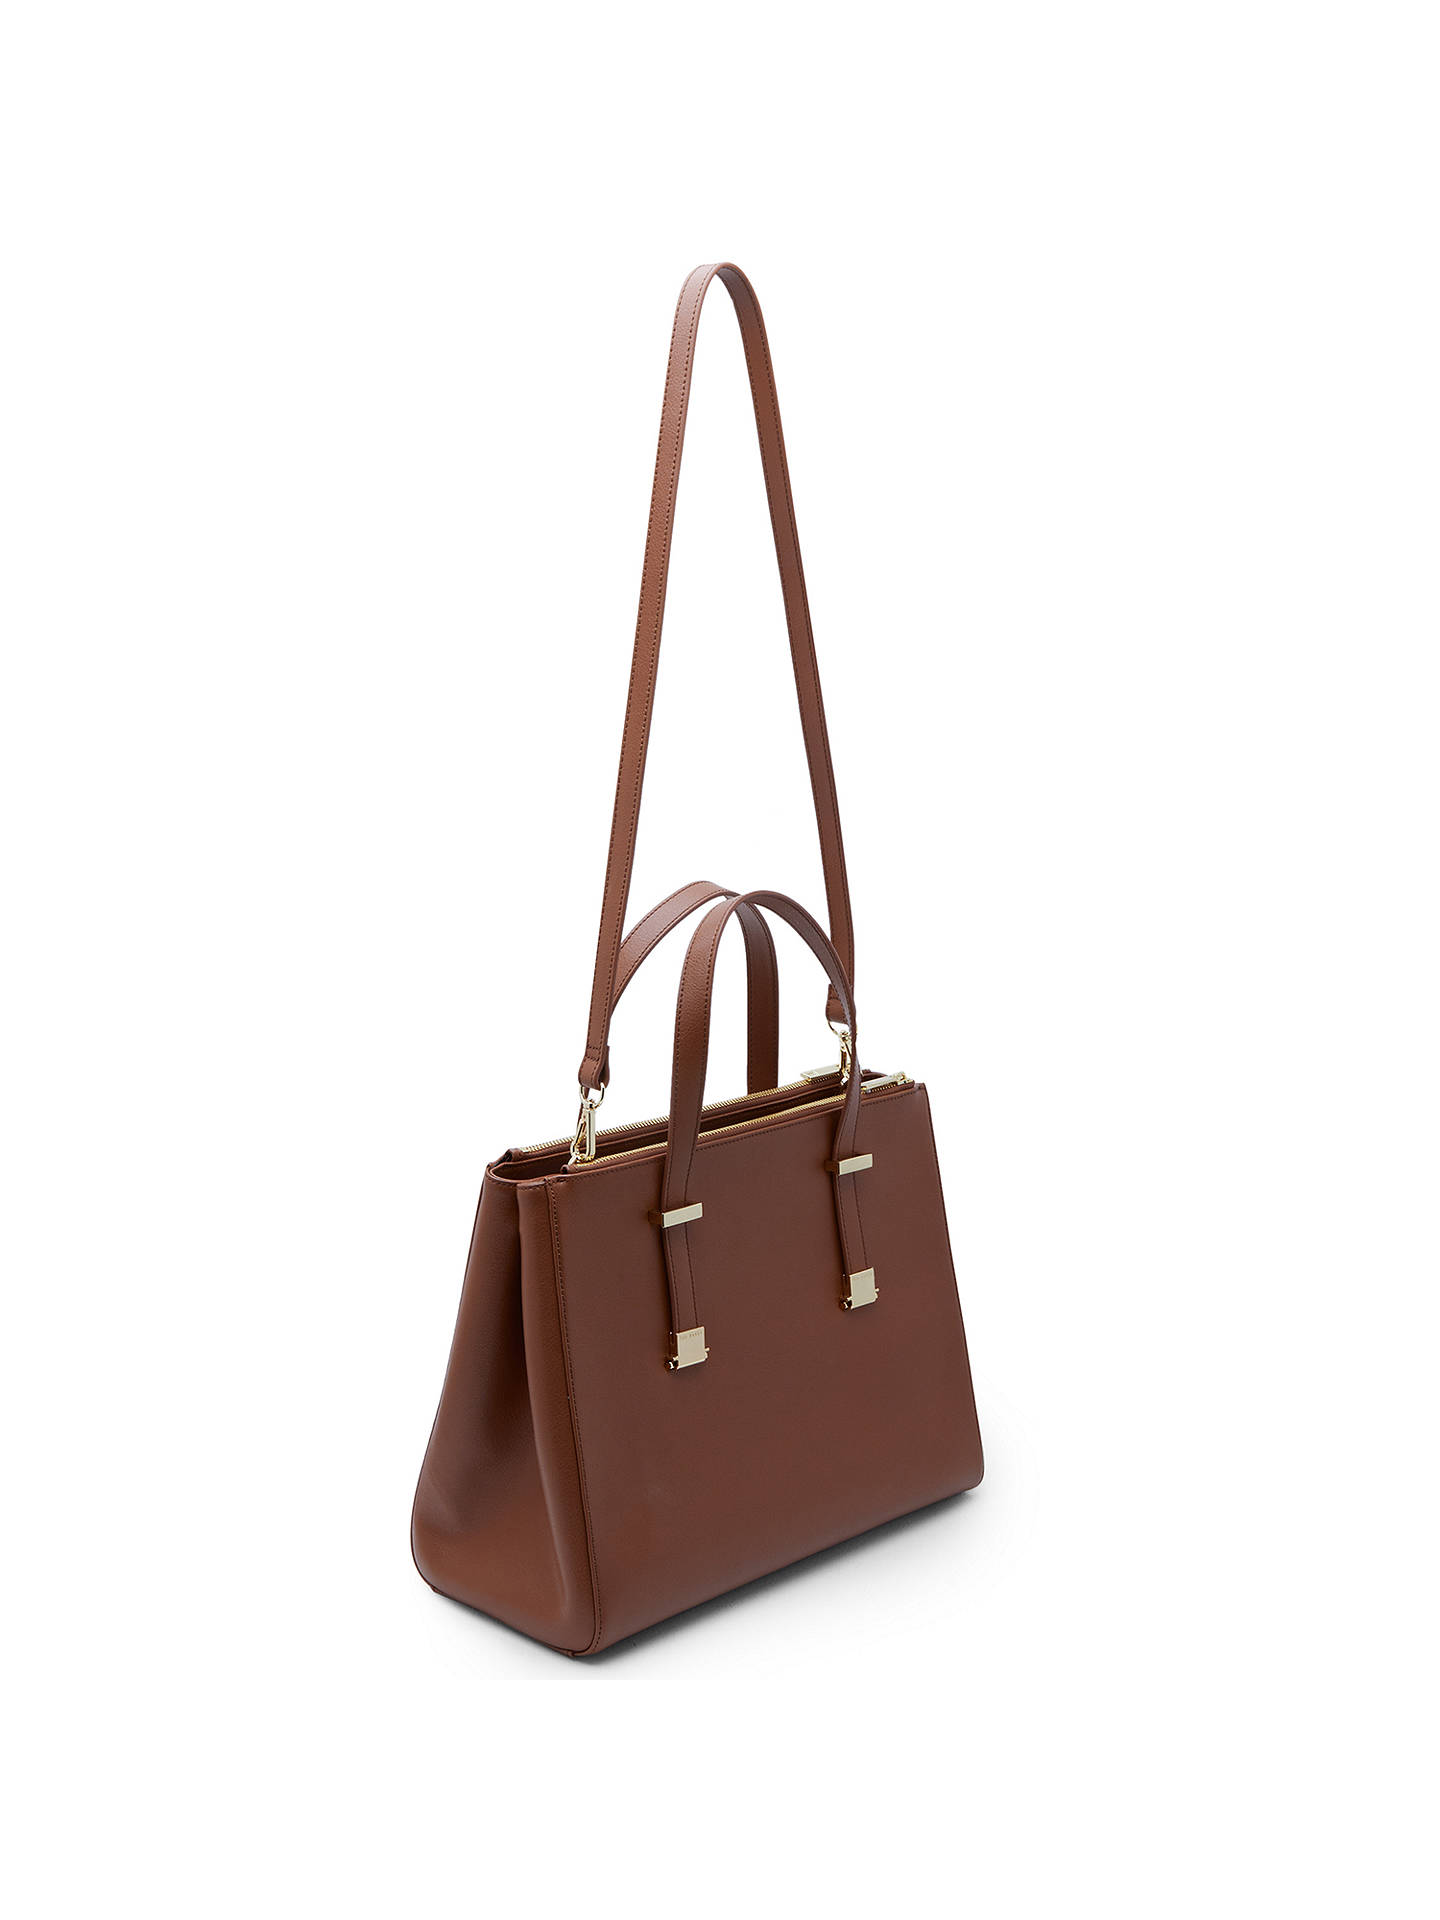 Buy Ted Baker Alunaa Pebble Grain Leather Large Tote Bag, Camel Online at johnlewis.com